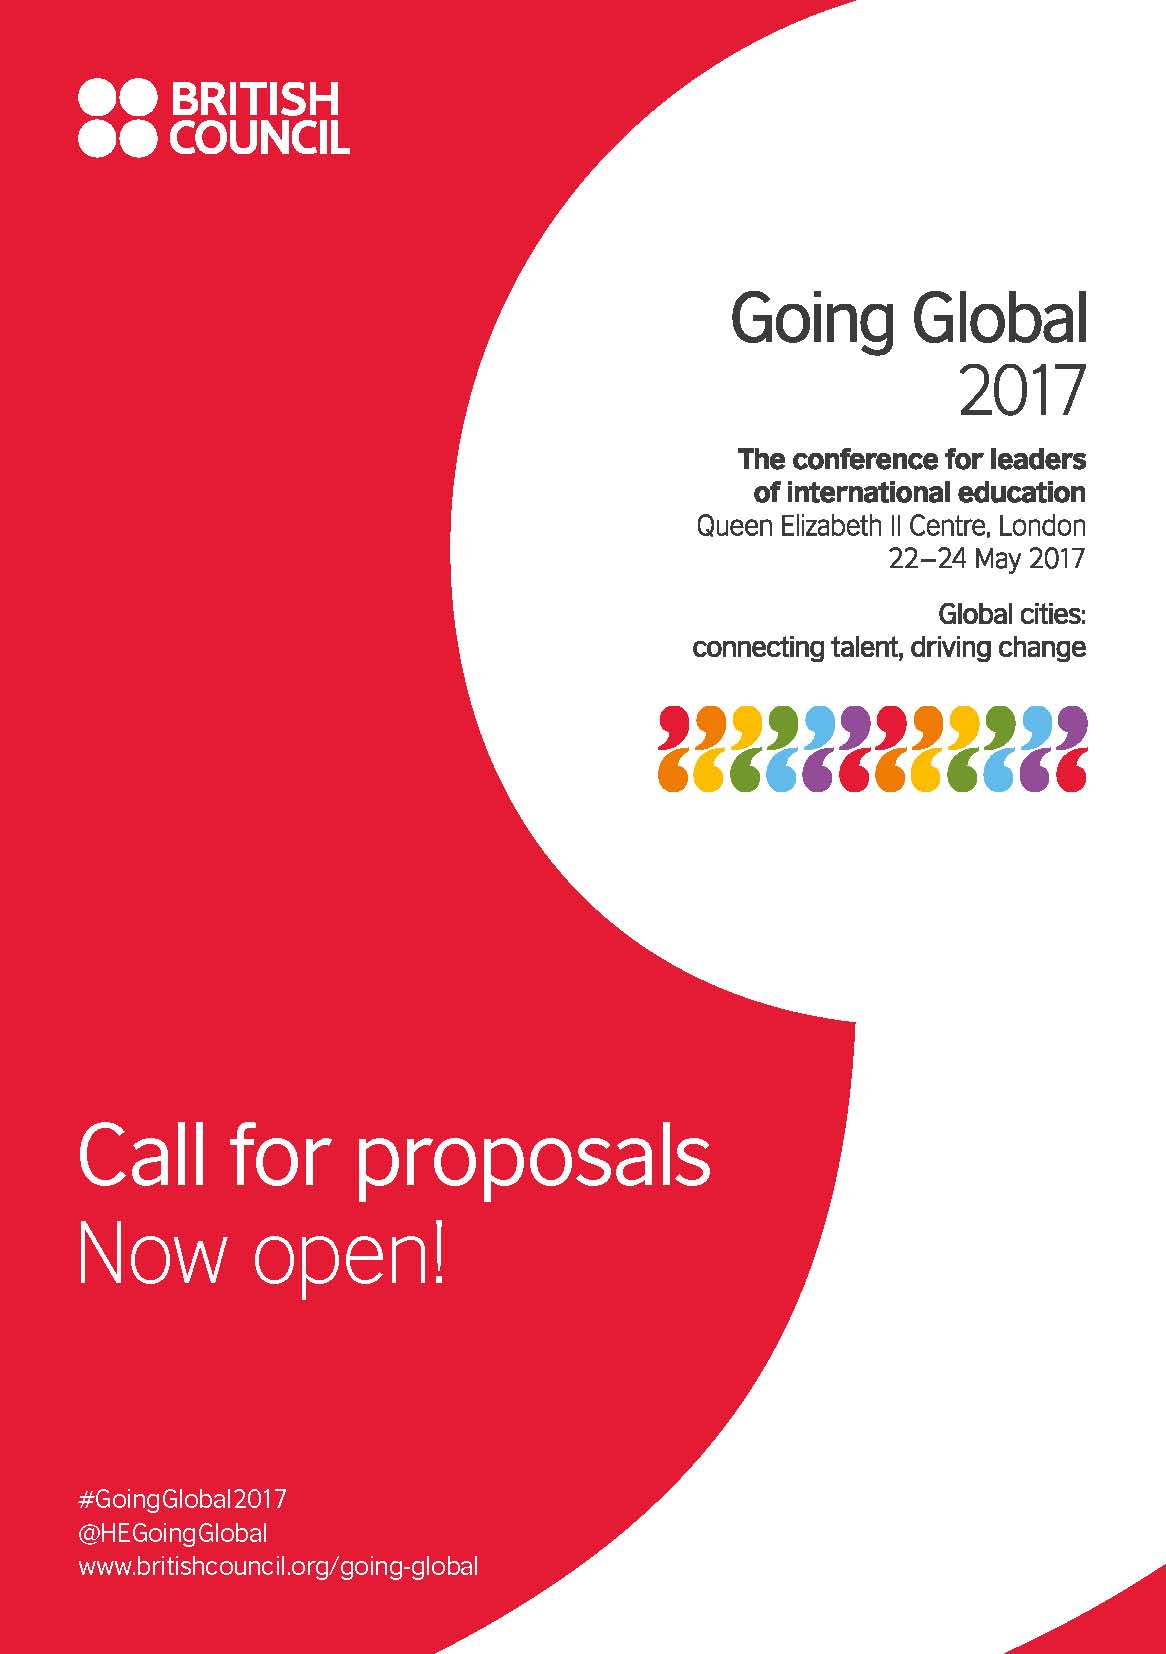 g105_06_gg2017-call-for-proposals-a5_final_web_page_1